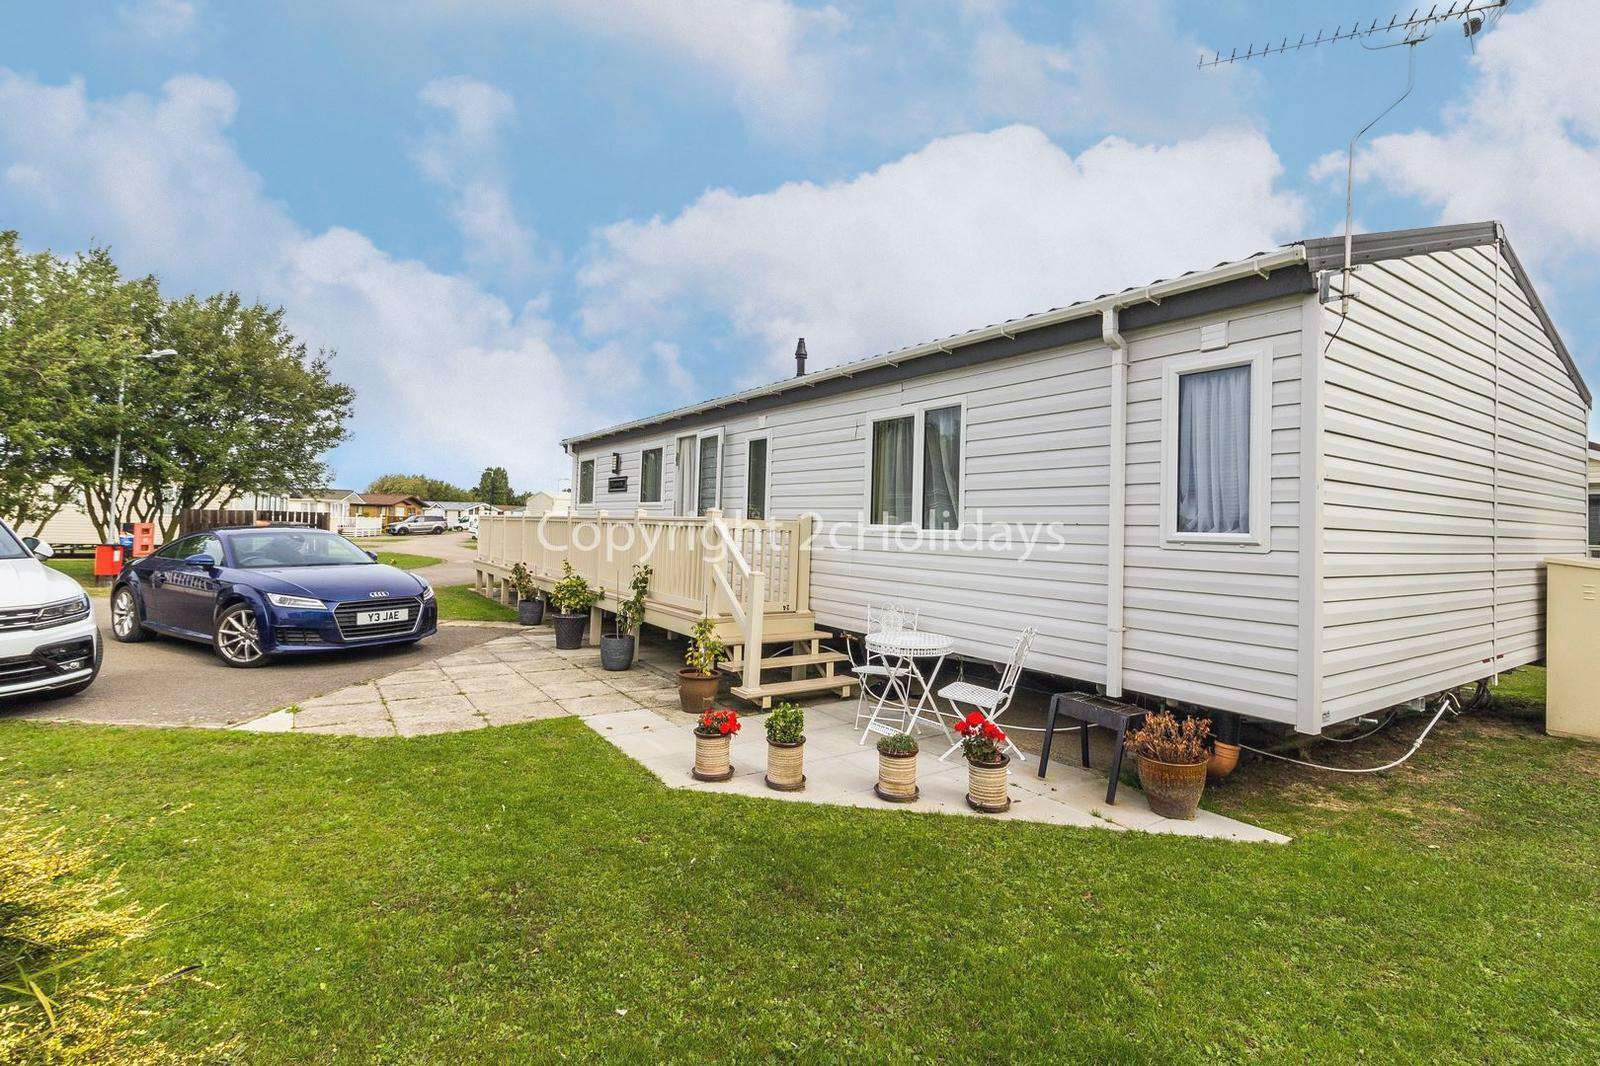 So many families have enjoyed a great break Manor Park Holiday Park